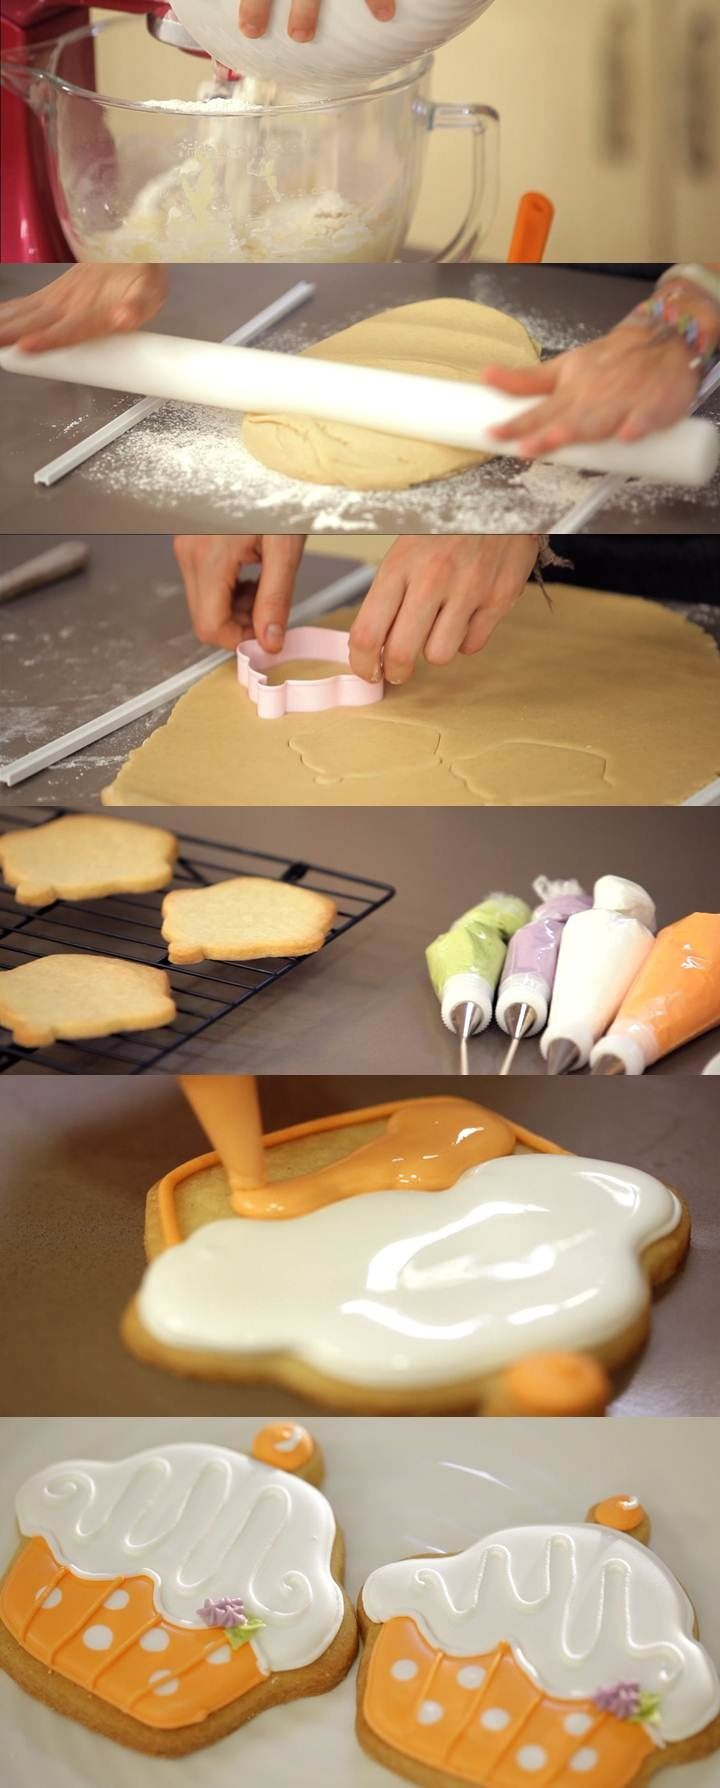 Cupcake Maniacs 4: Galletas con glasa en forma de Cupcake #food #recipes